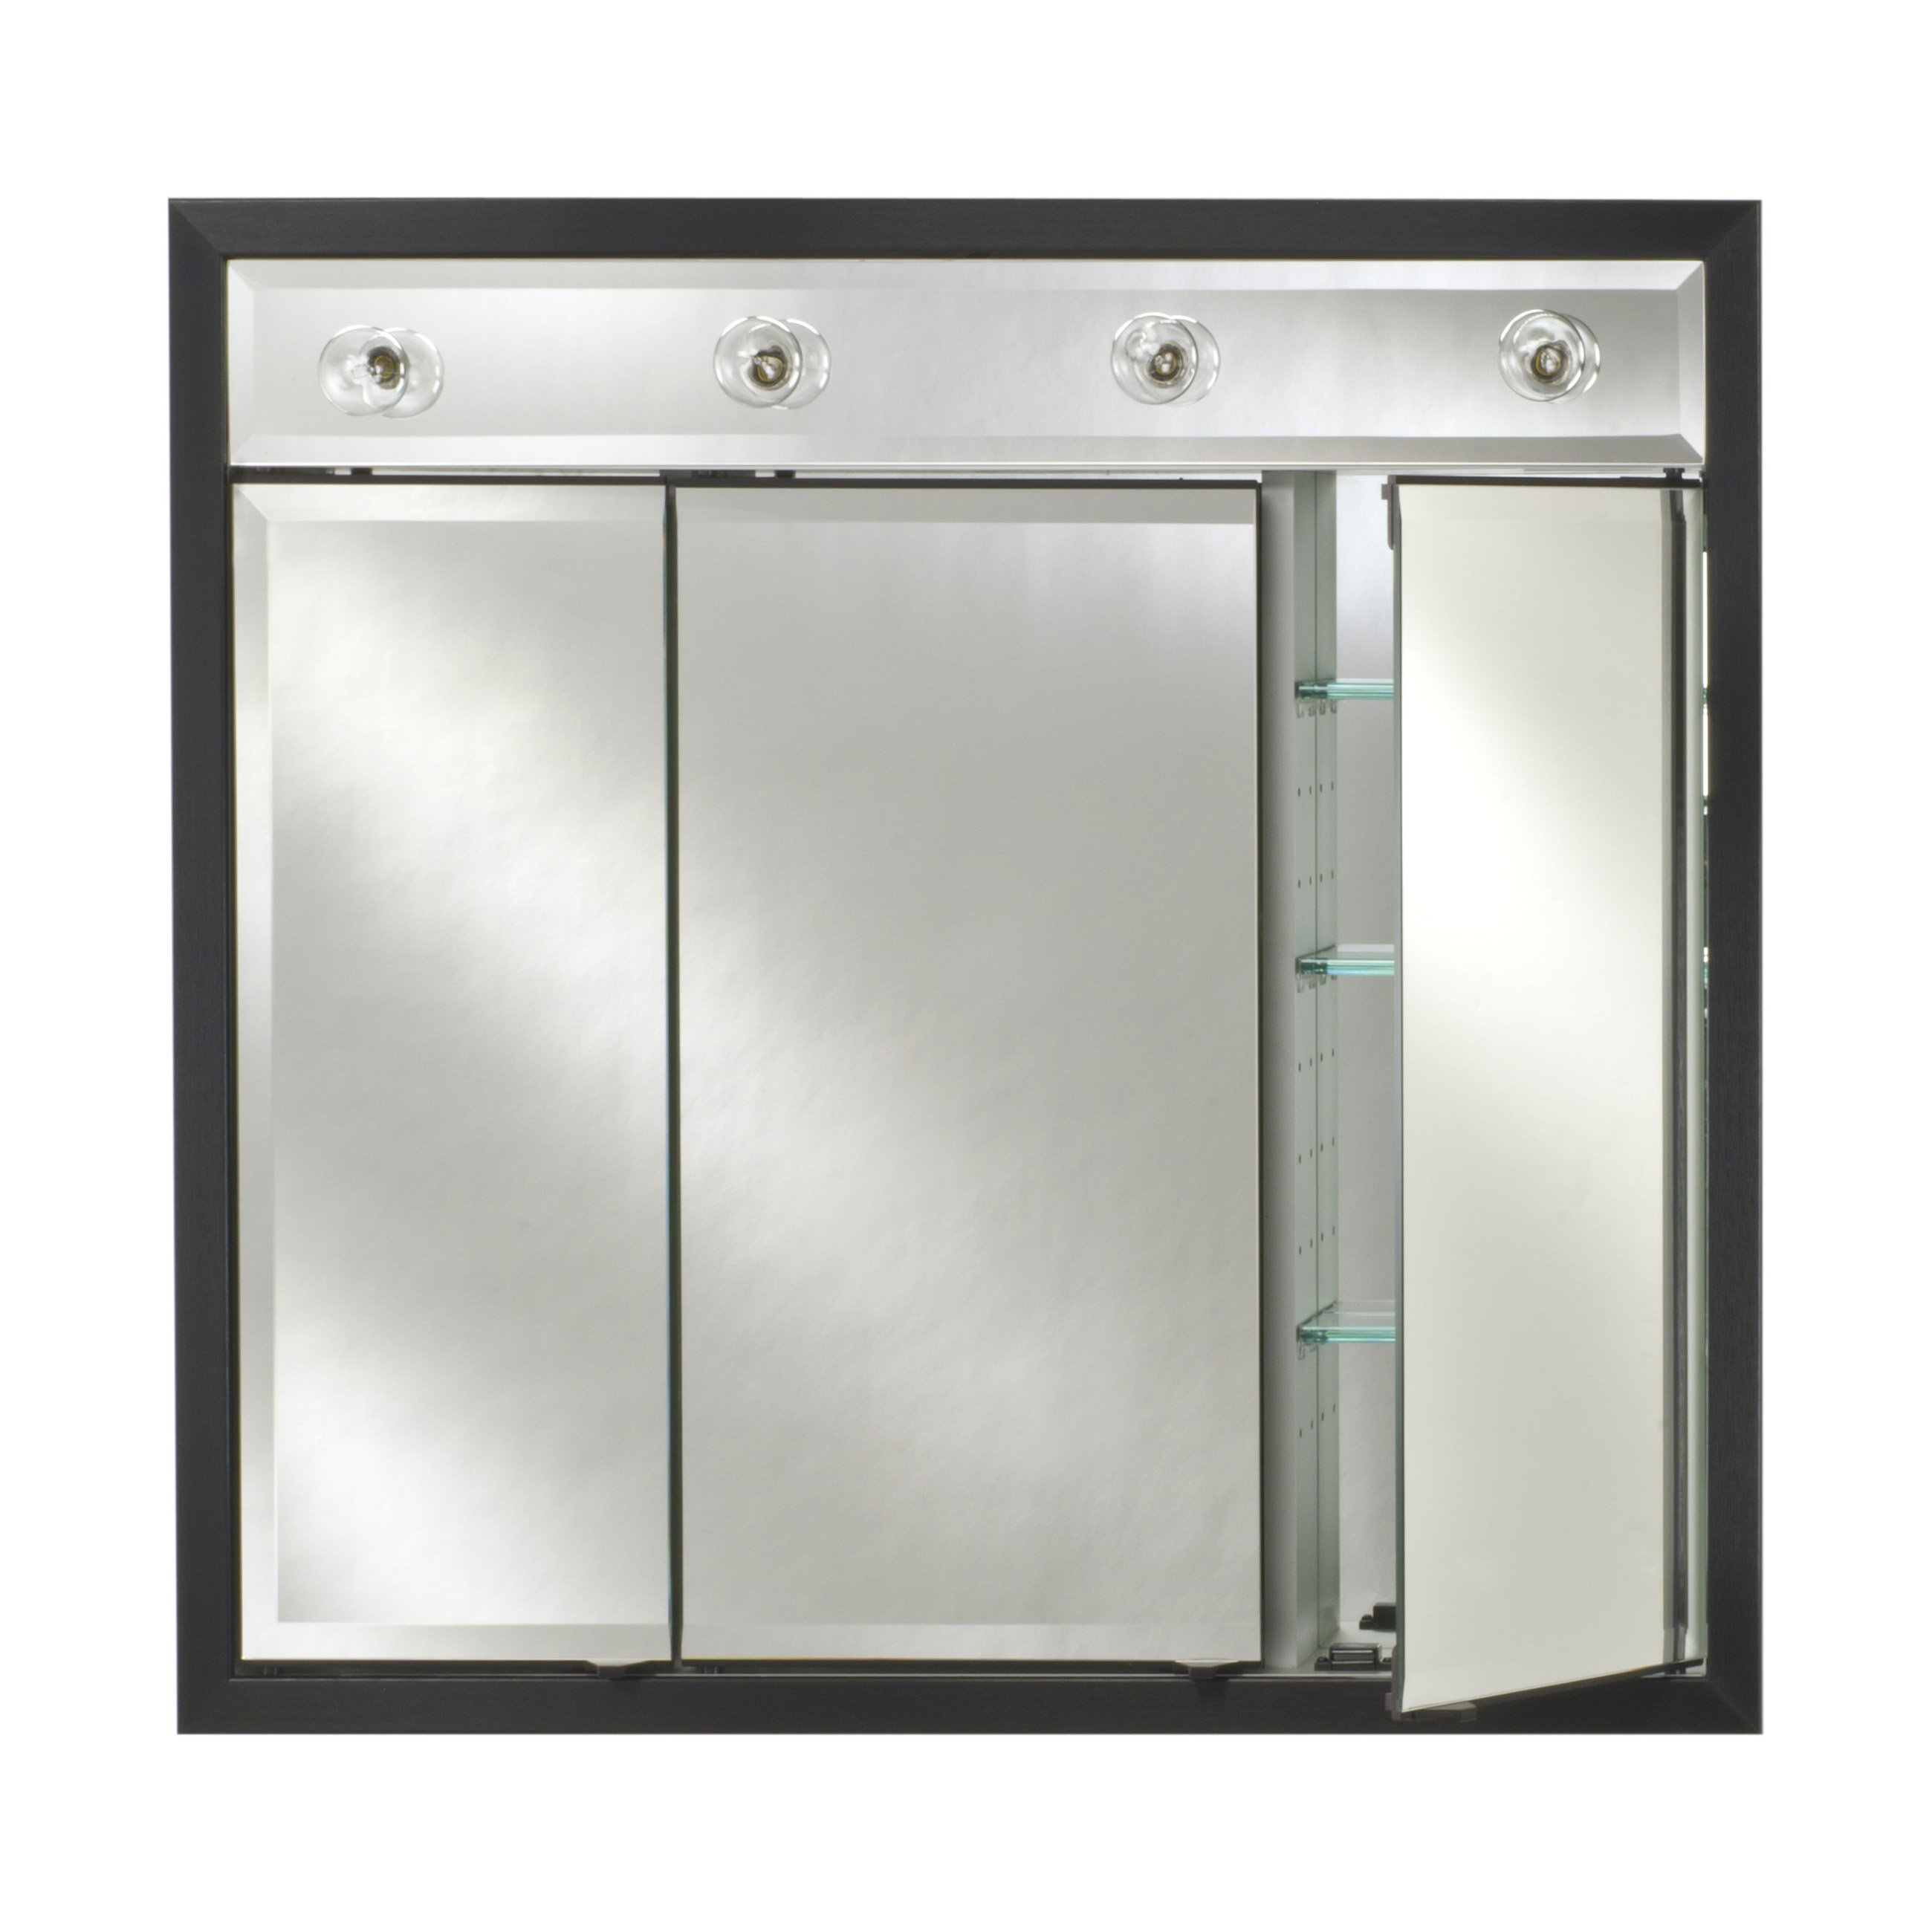 Afina Signature Contemporary Lighted Triple Door 47W x 40H in. Recessed Medicine Cabinet